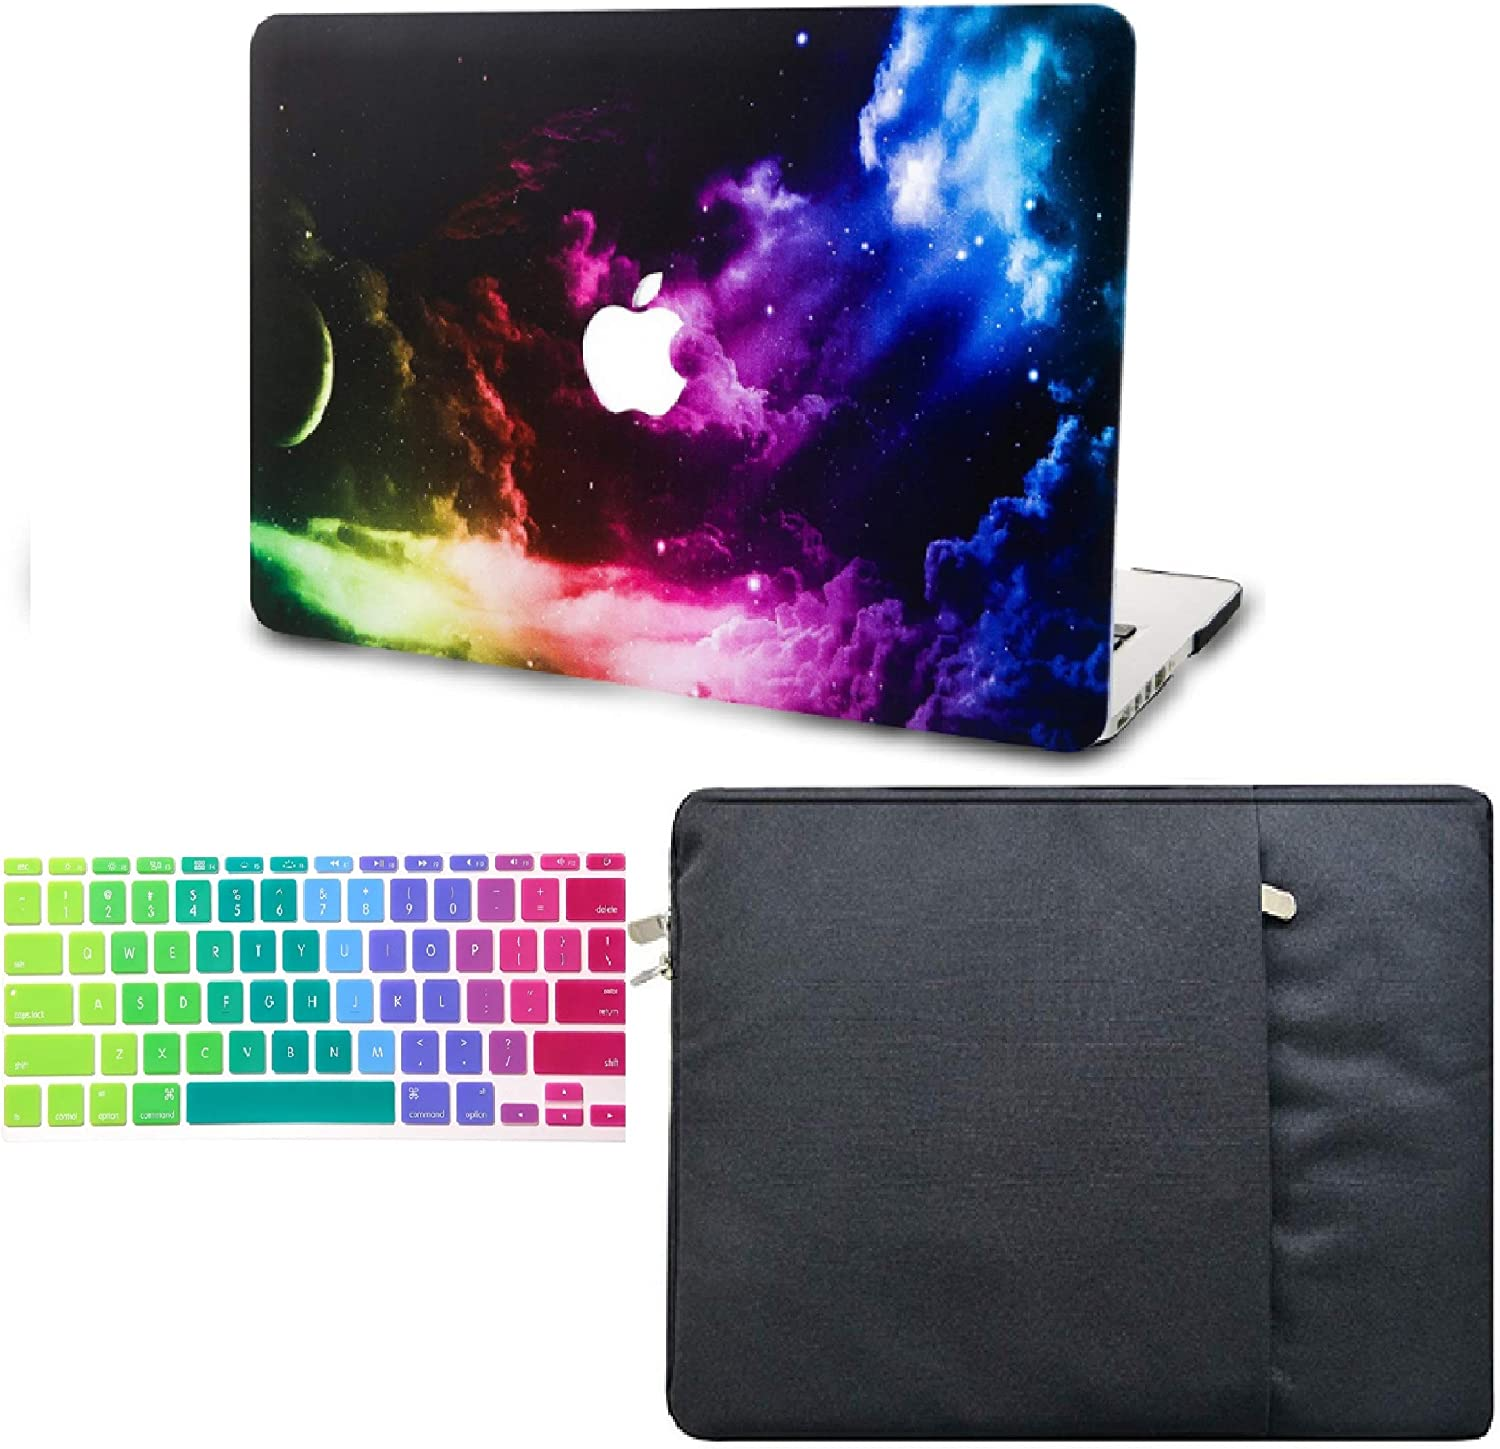 "KECC Laptop Case for Old MacBook Pro 13"" Retina (2015-) w/Keyboard Cover + Sleeve Plastic Hard Shell Case A1502/A1425 3 in 1 Bundle (Colorful Space)"